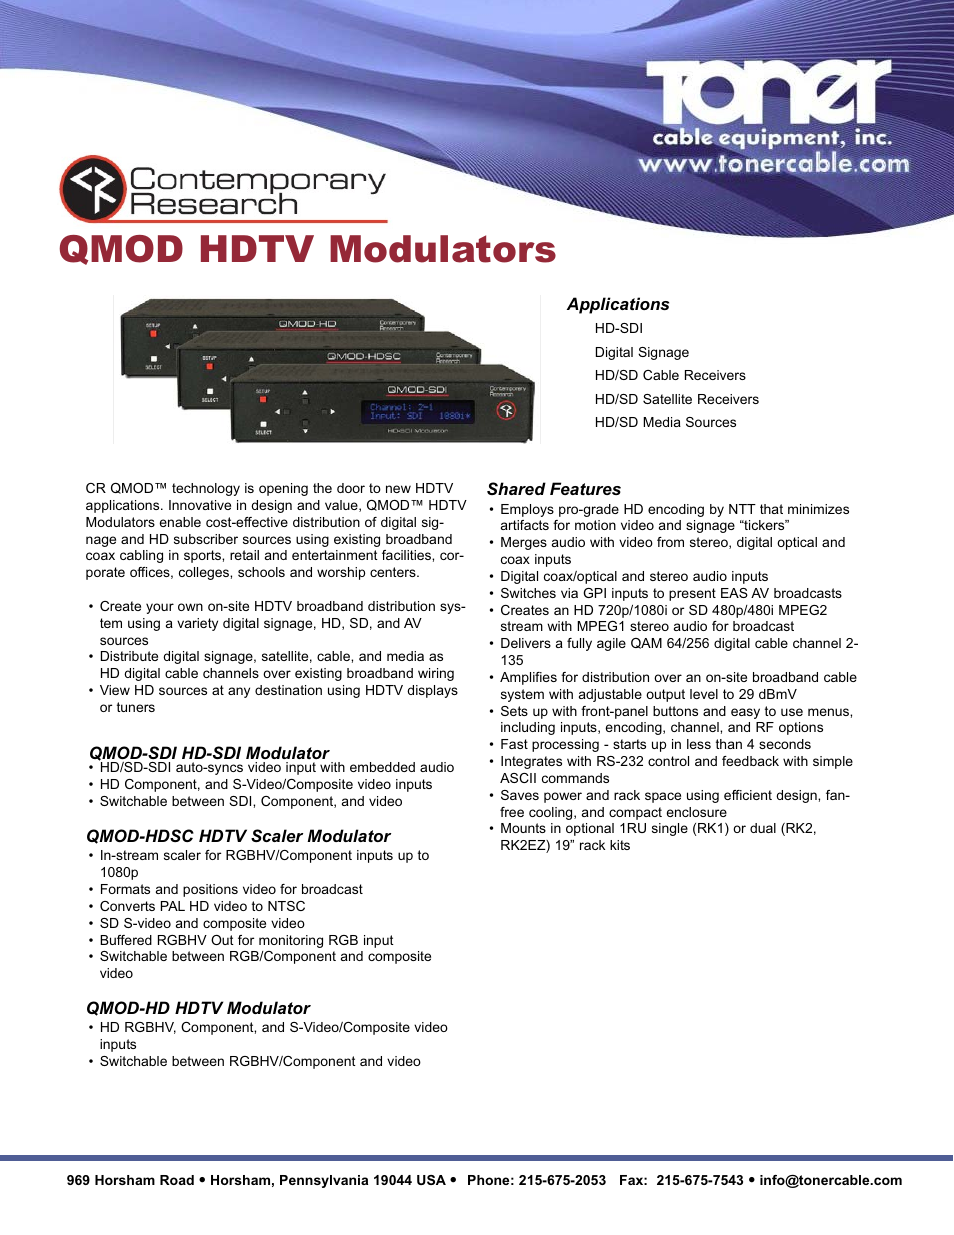 Toner Cable Qmod Sdi Hd Modulator User Manual 2 Pages Video Wires The You Run For Your Distribution